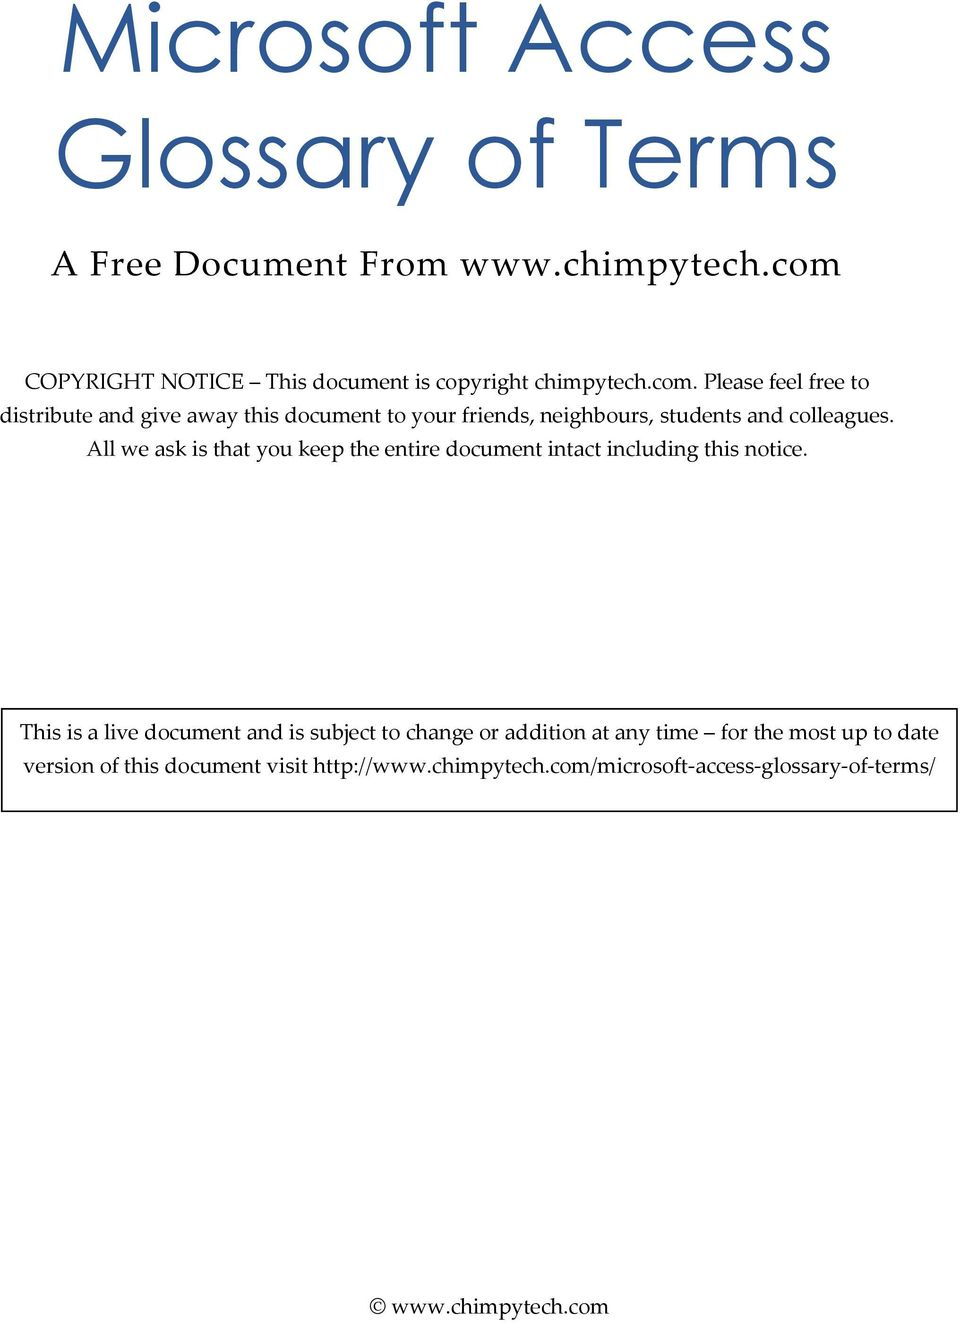 All we ask is that you keep the entire document intact including this notice.